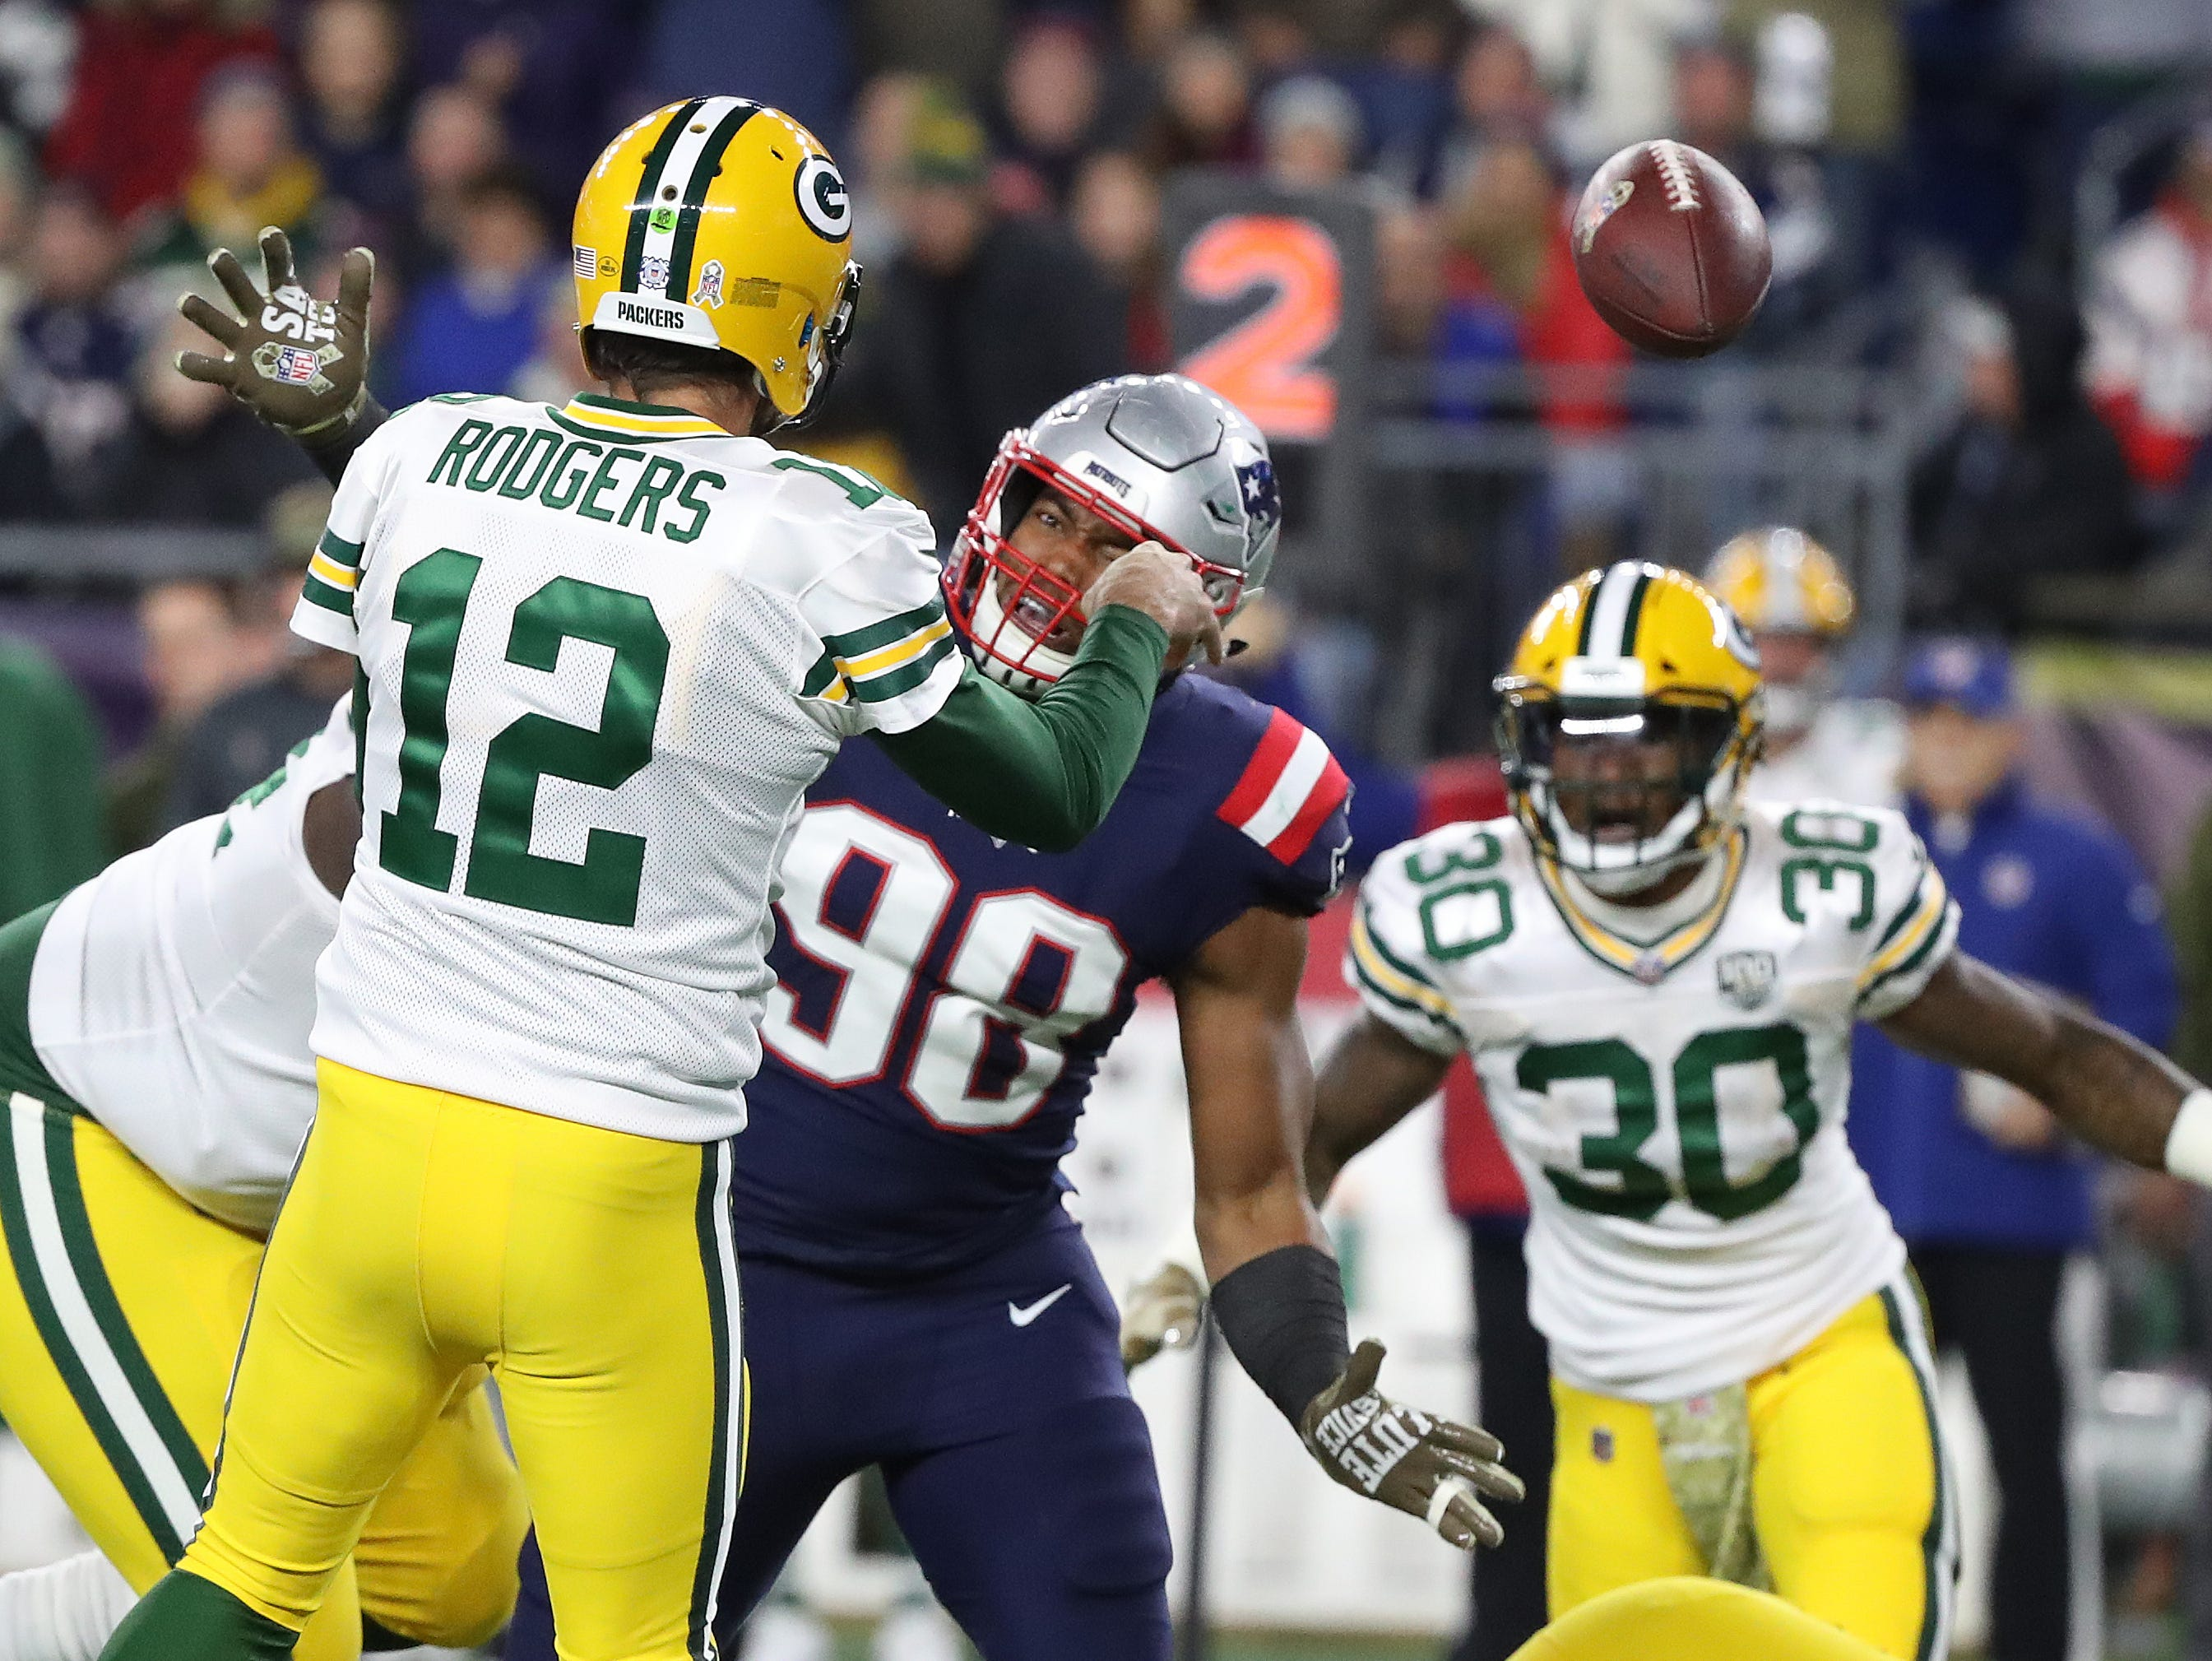 Green Bay Packers quarterback Aaron Rodgers (12) has two get rid of the ball as defensive tackle Malcom Brown (90) breaks into the pocket against the New England Patriots Sunday, November 4, 2018 at Gillette Stadium in Foxboro, Mass.